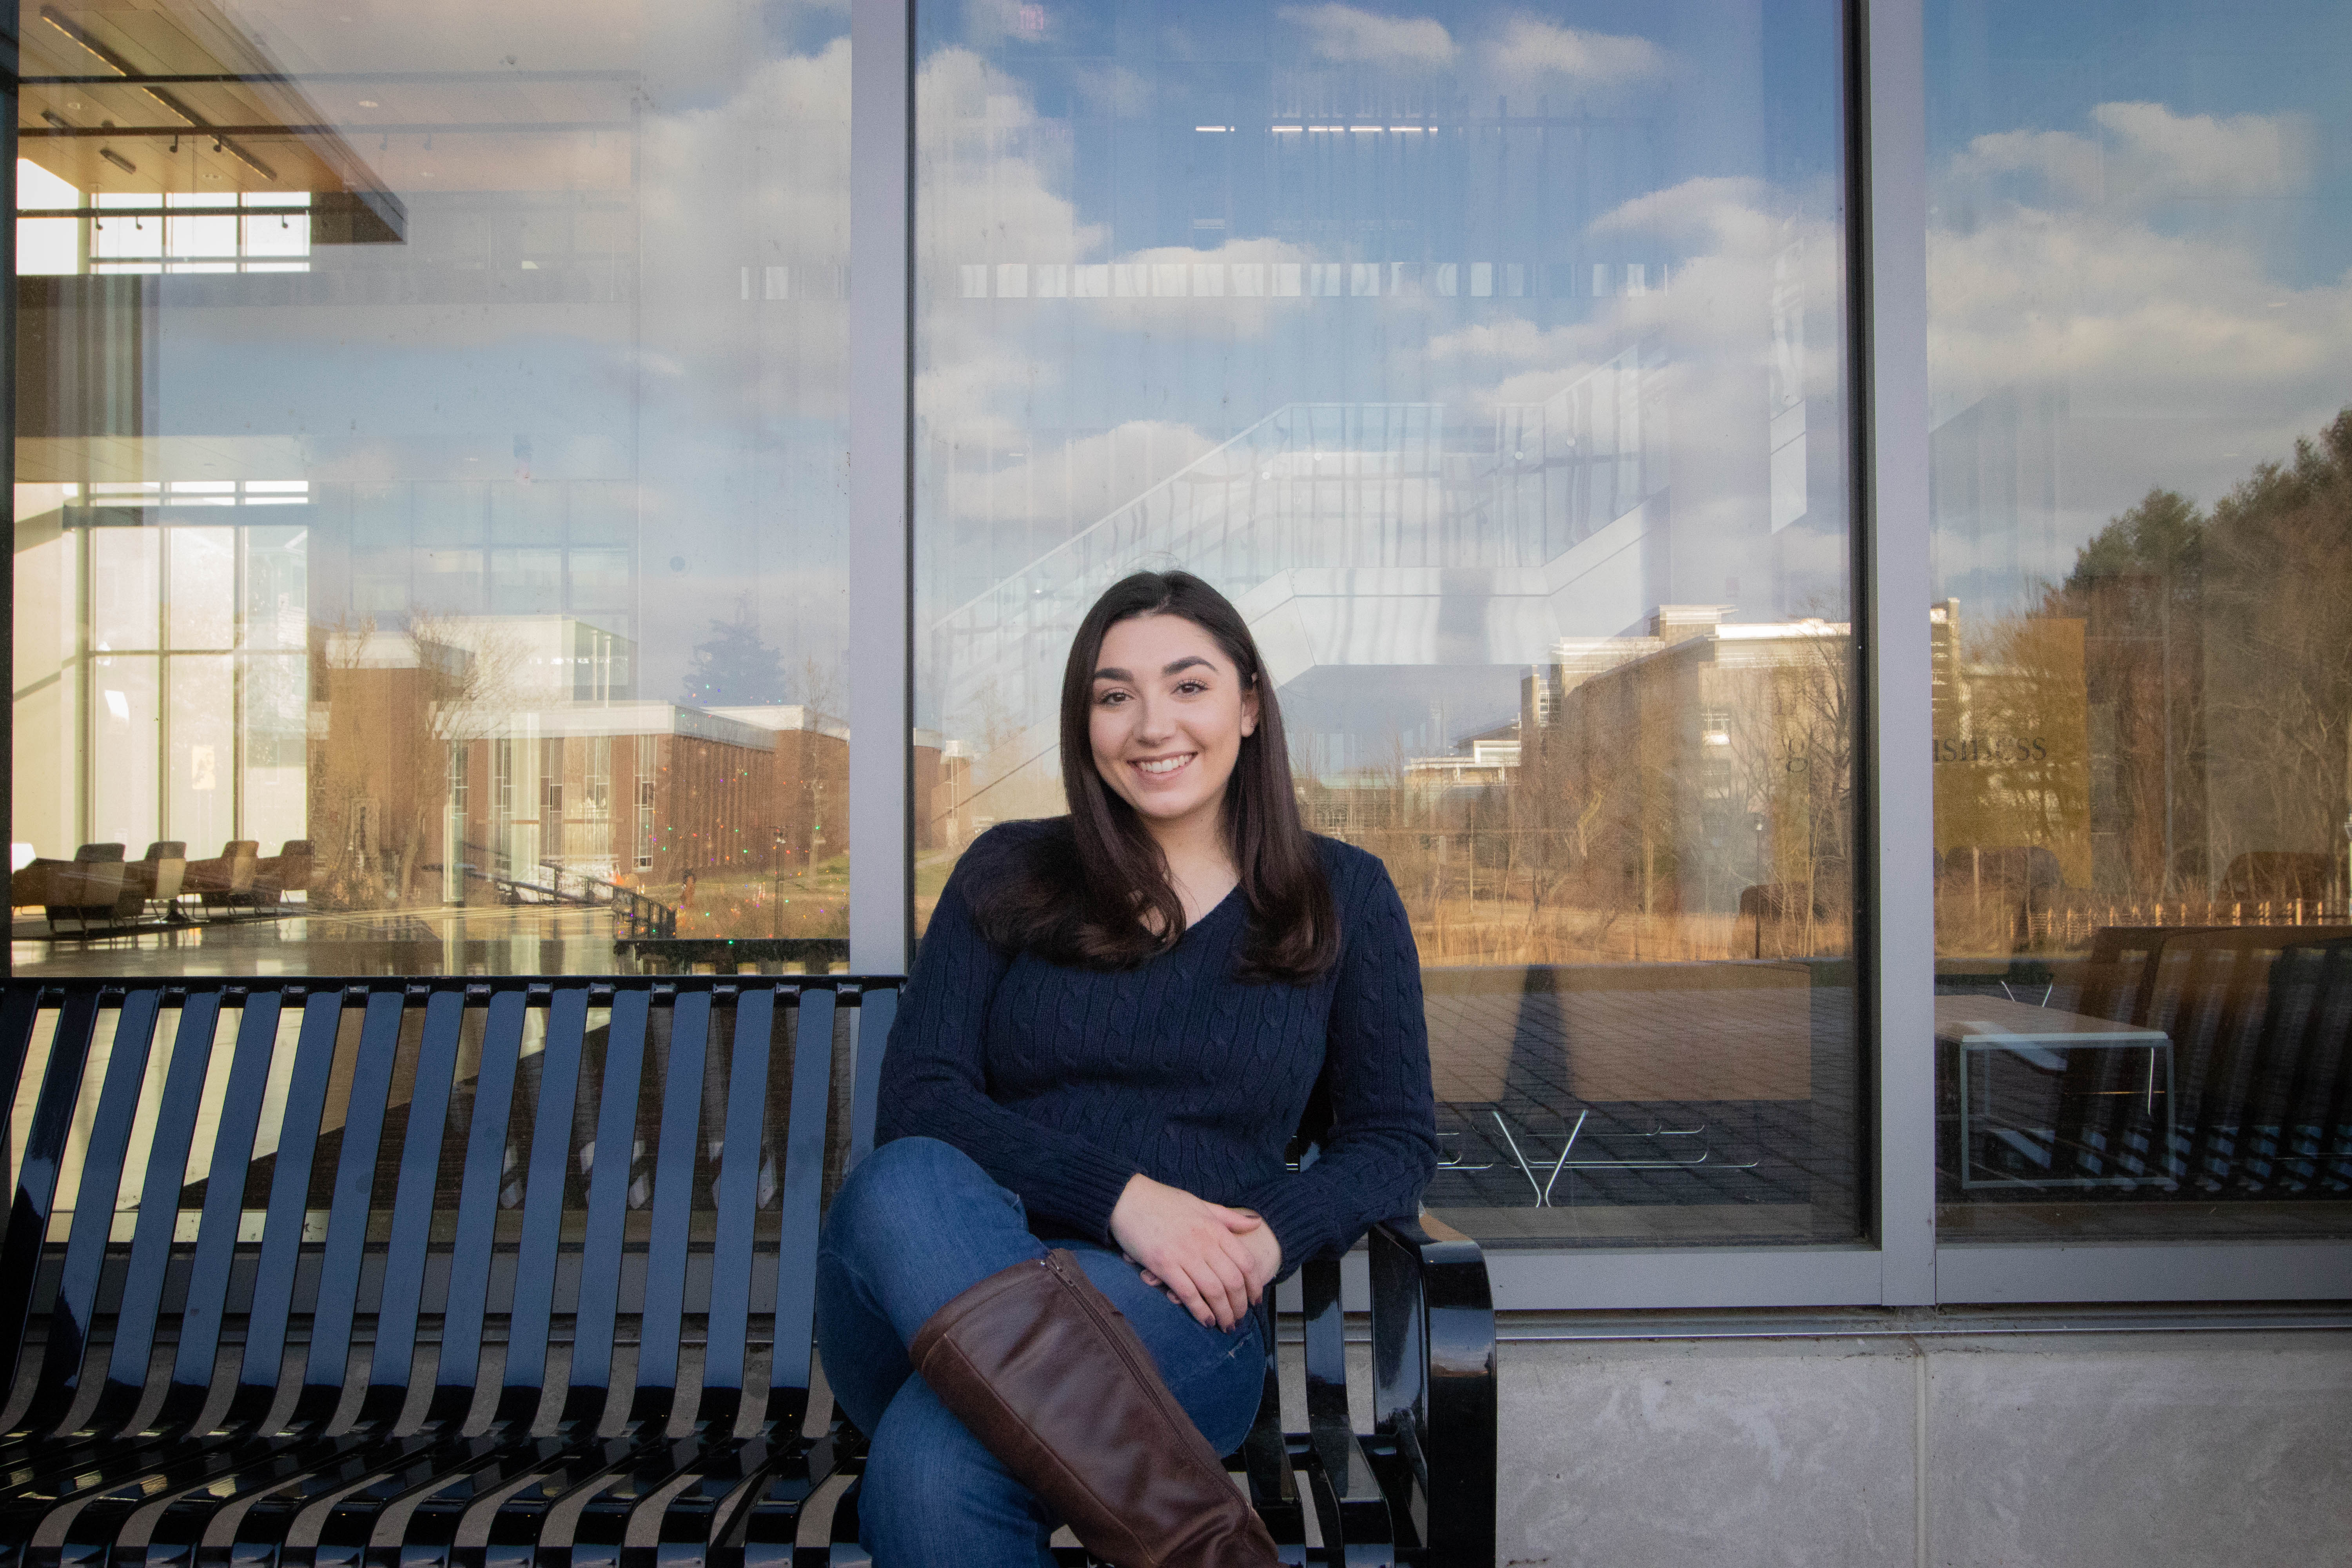 Sophia sitting outside Rowan's Rohrer College of Business building.